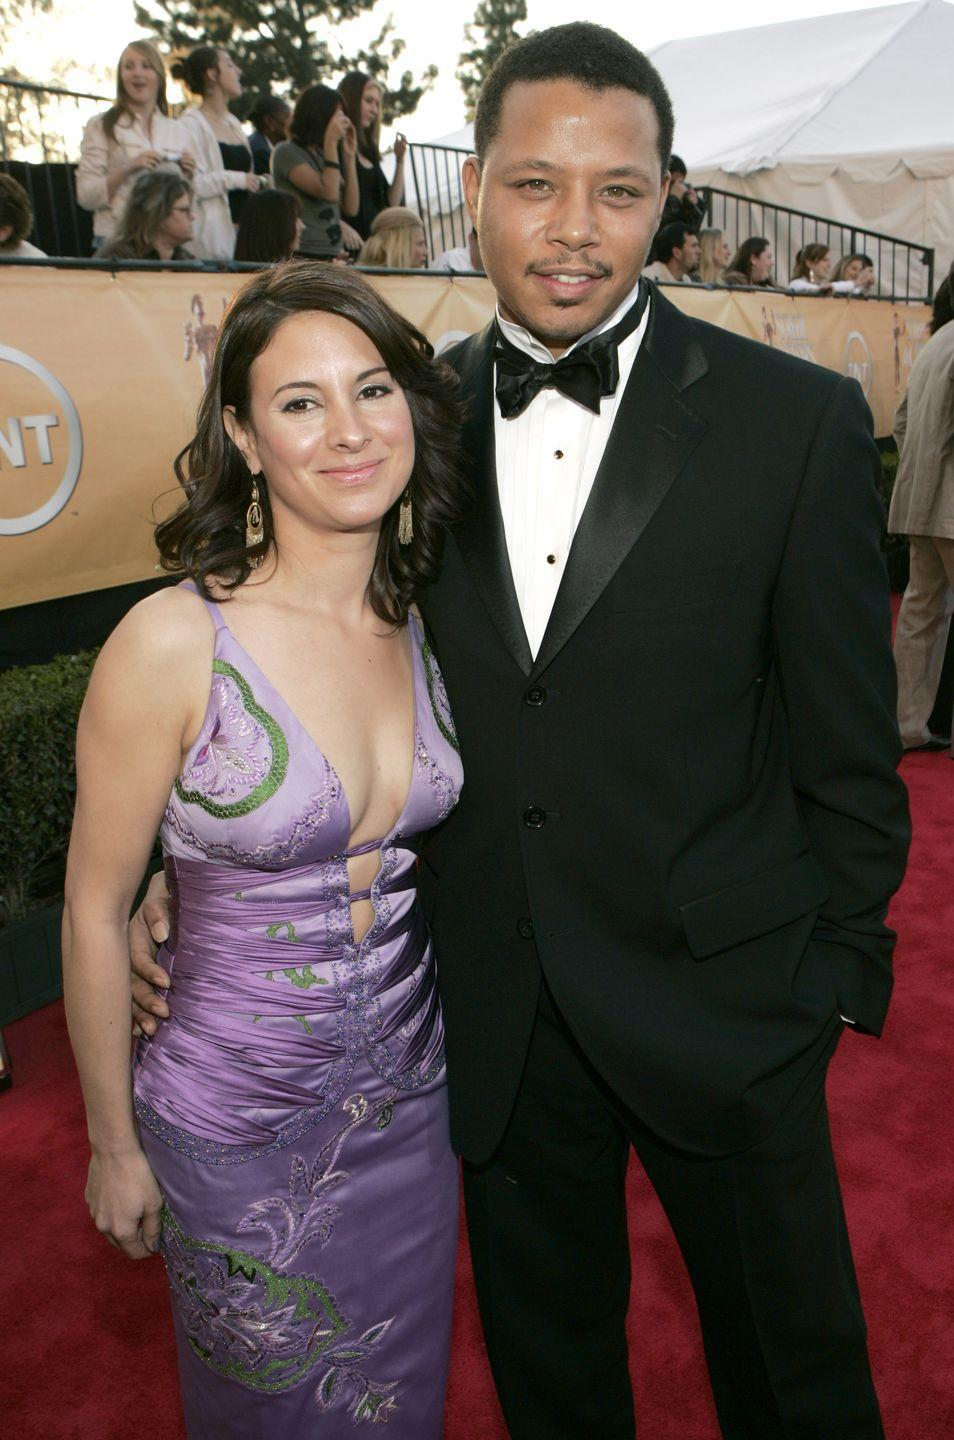 """<p>Terrence Howard and Lori McCommas <a href=""""https://eu.usatoday.com/story/life/people/2018/12/25/terrance-howard-proposes-ex-wife-mira-pak-years-after-they-divorced/2411922002/"""" rel=""""nofollow noopener"""" target=""""_blank"""" data-ylk=""""slk:first got married in 1989"""" class=""""link rapid-noclick-resp"""">first got married in 1989</a>, but divorced in 2003. The actor later reconciled with his ex-wife and the two tied the knot again in 2005. Their second union only lasted two years, and they divorced in 2007.</p>"""